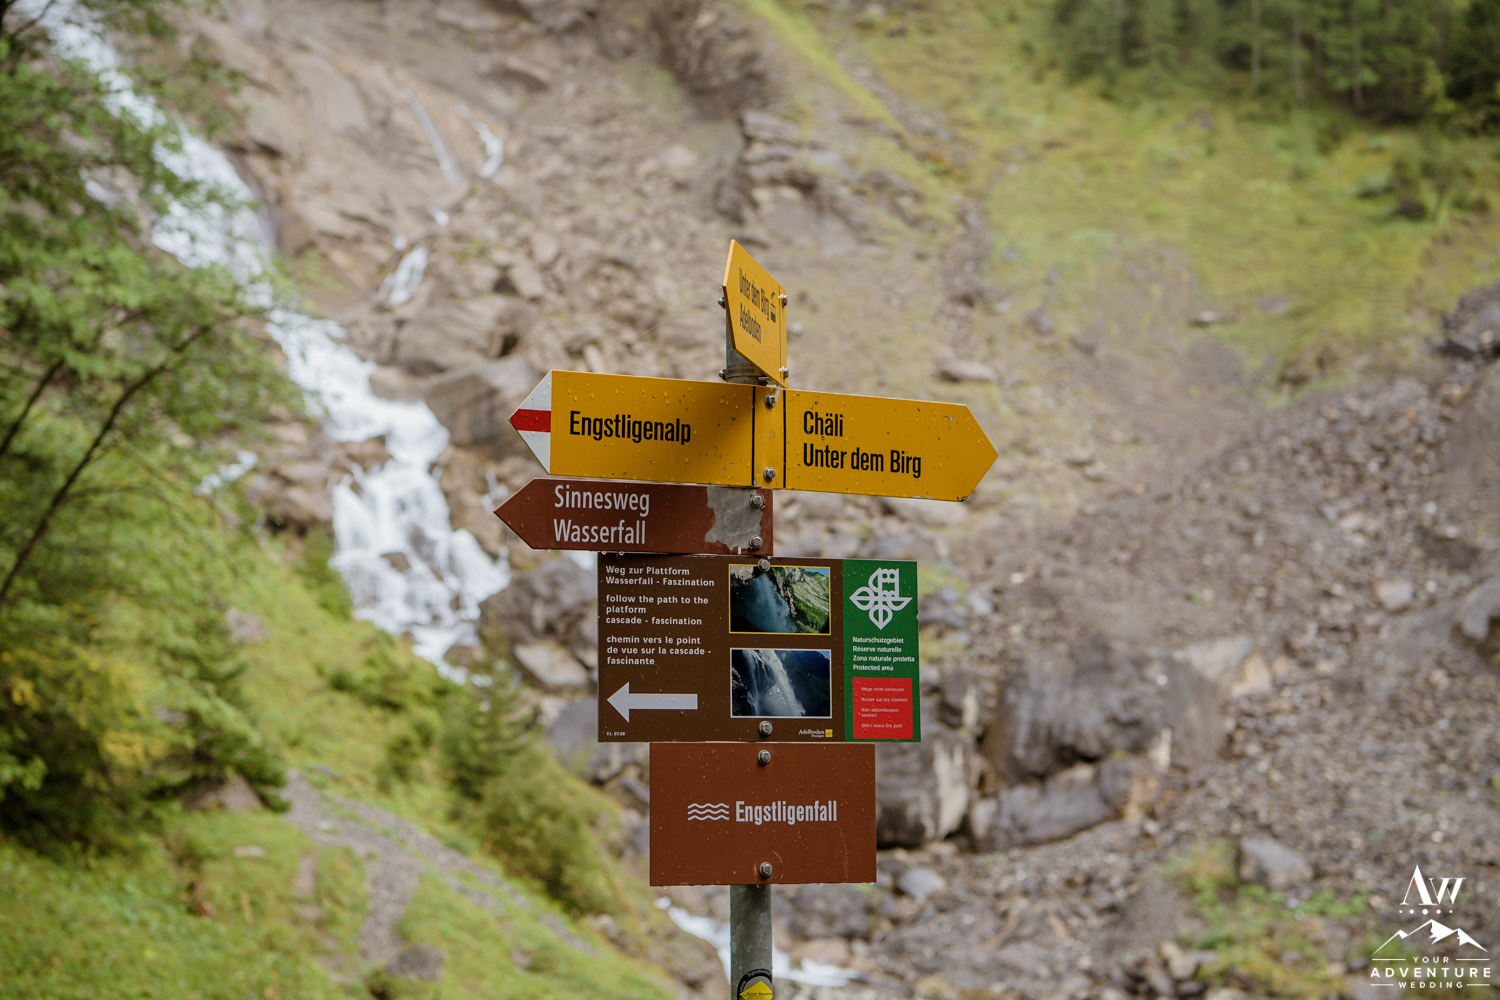 Engstligenalp Waterfall Wedding Sign in Switzerland